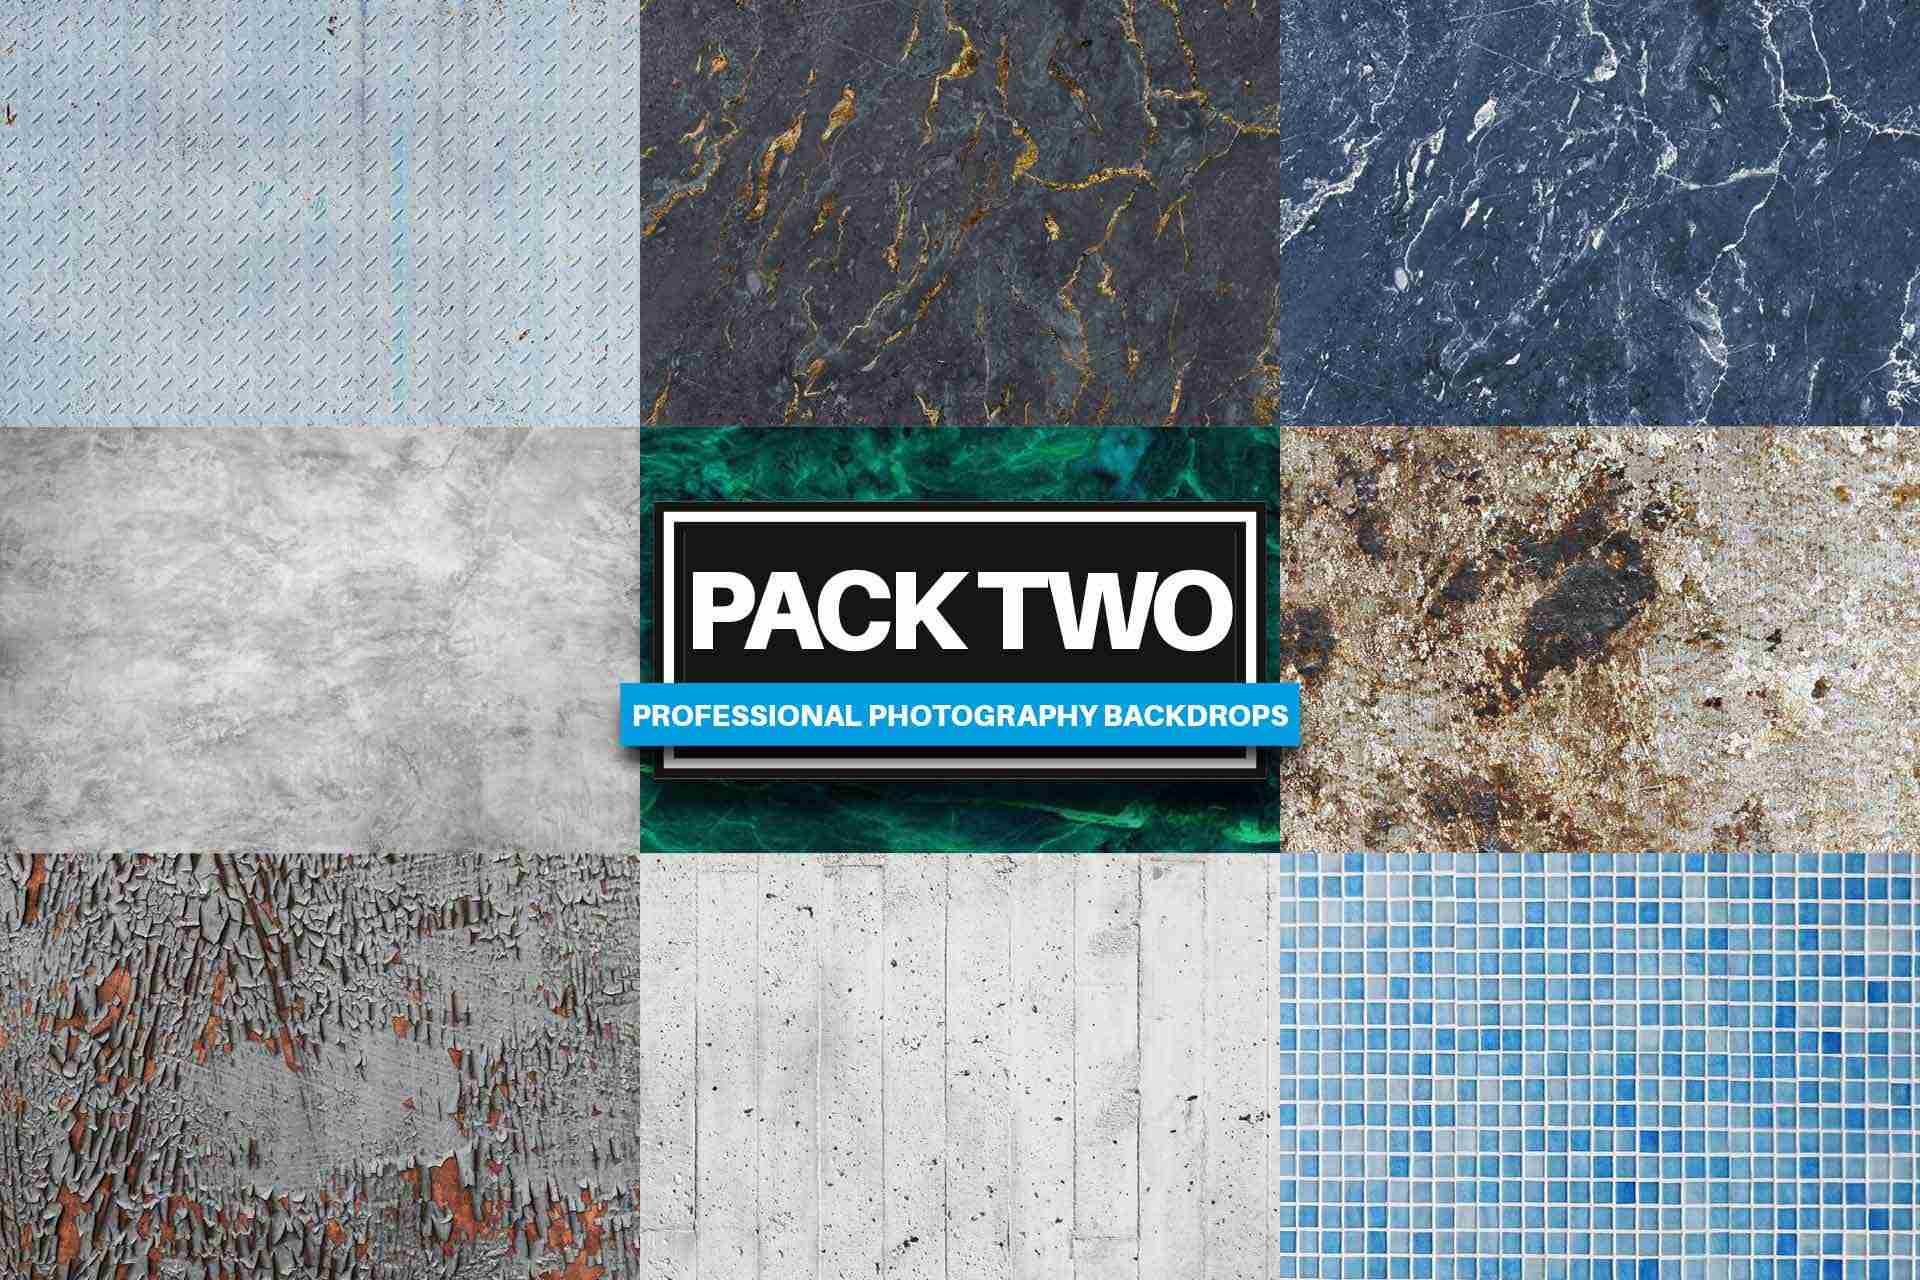 A2-Waterproof-Photographic-Backdrops-Pack2-